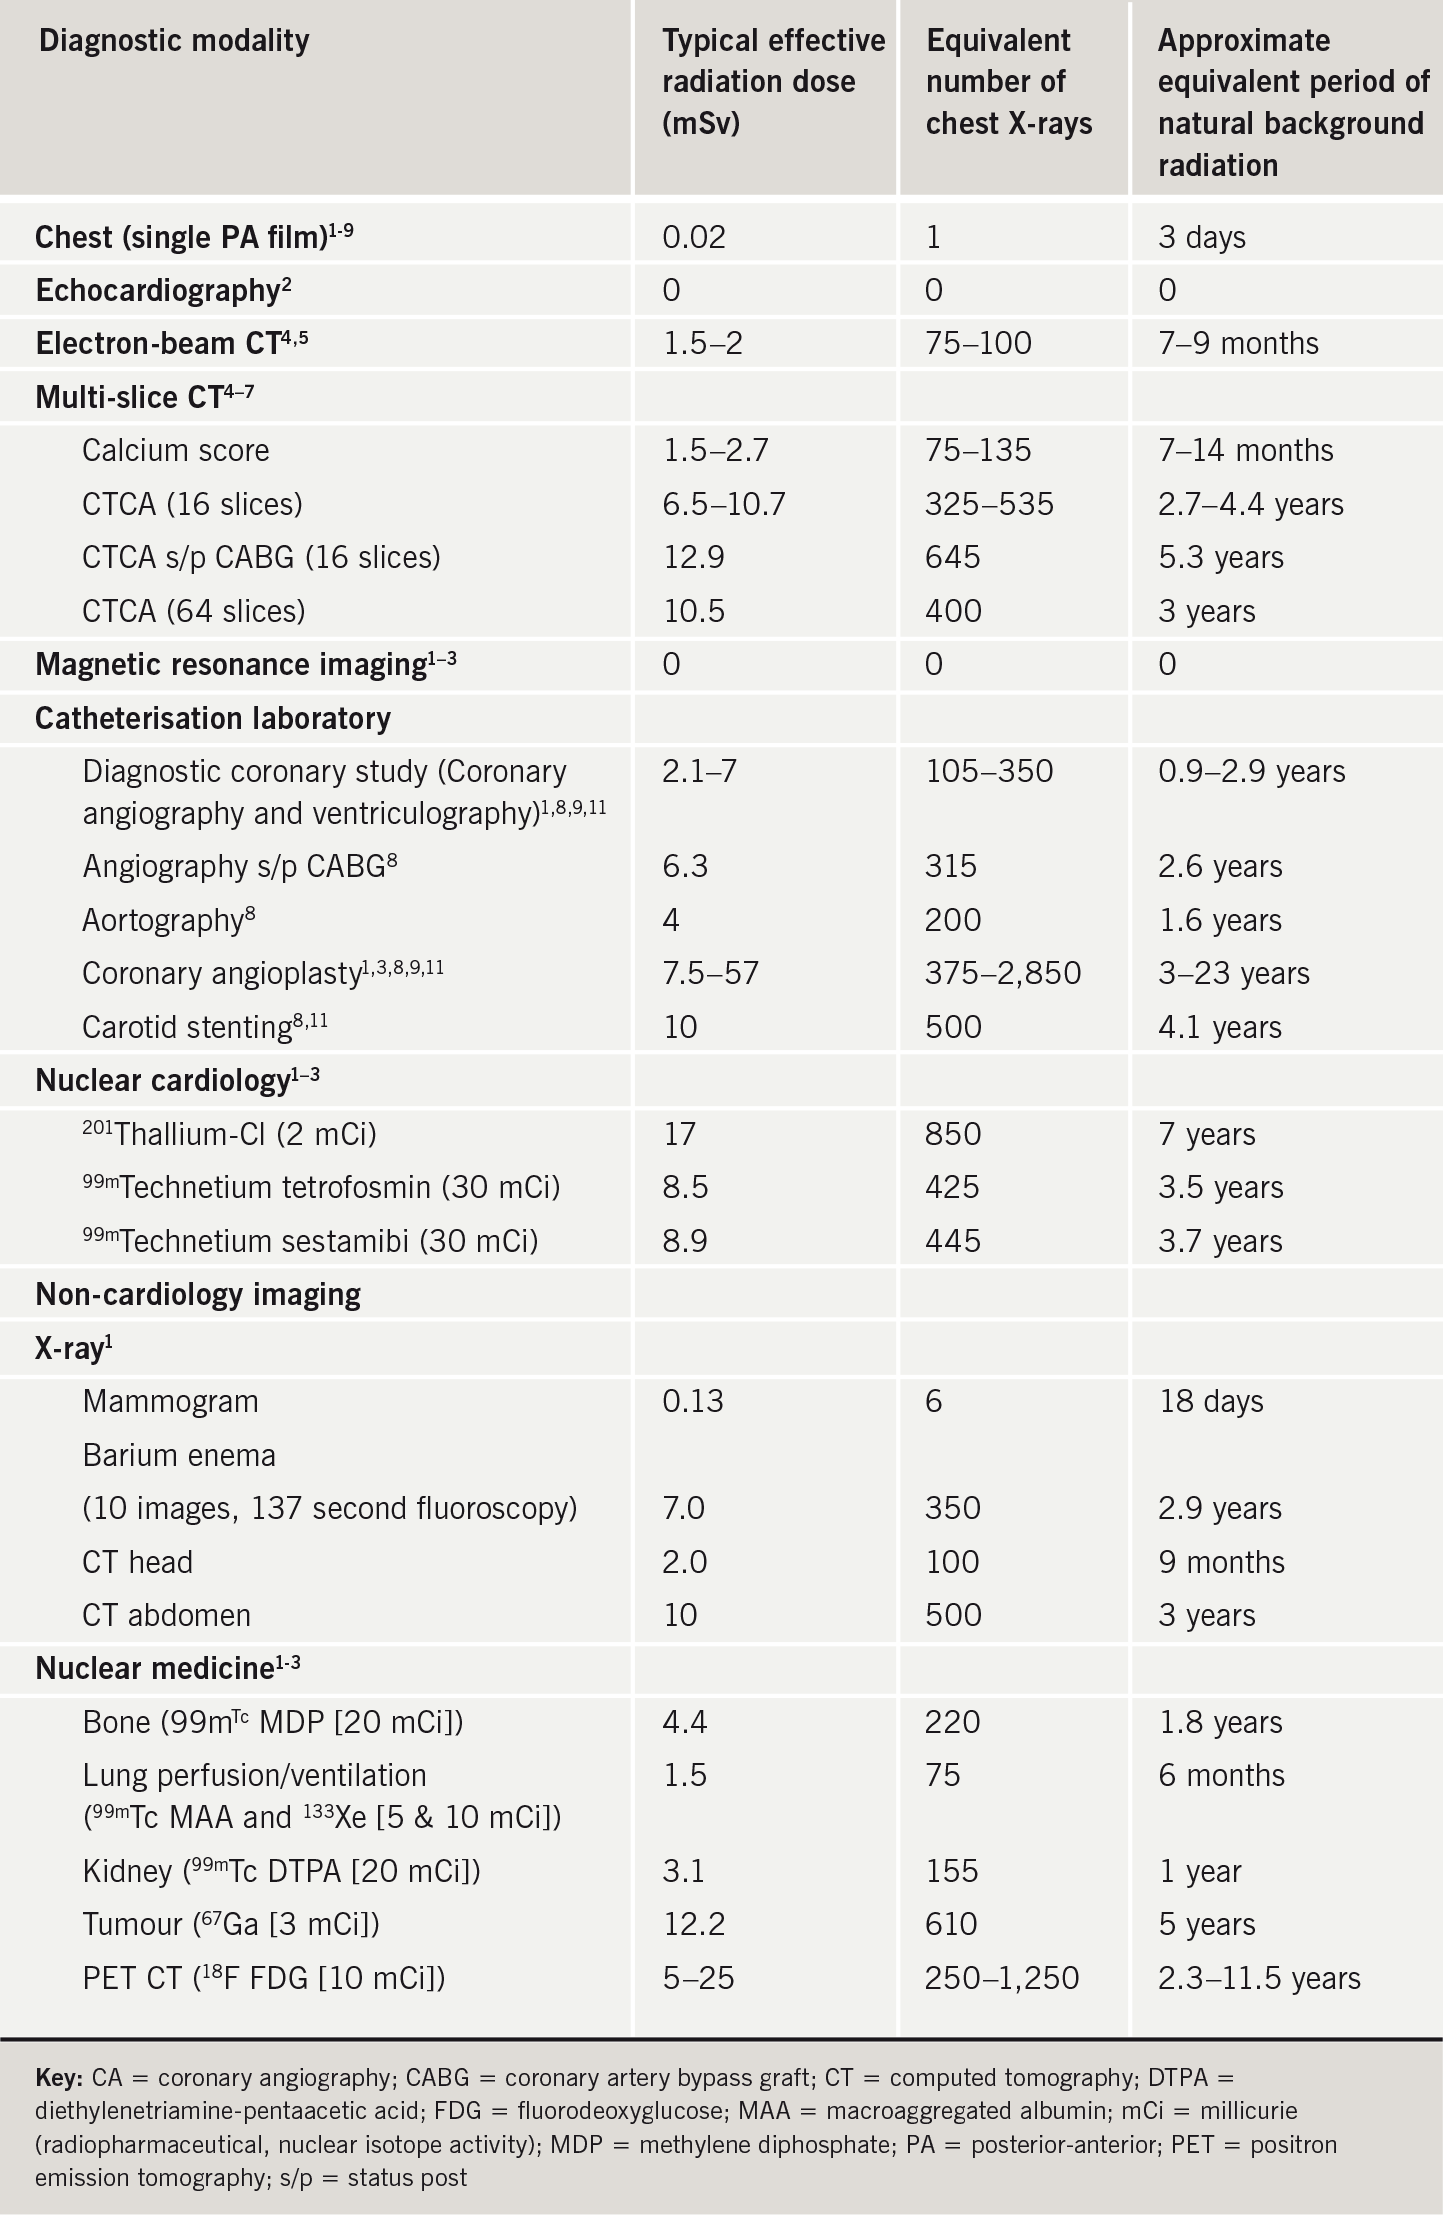 Table 1. Effective radiation dose compared with background radiation exposure and the equivalent number of chest X-rays for imaging modalities used in cardiology and medicine